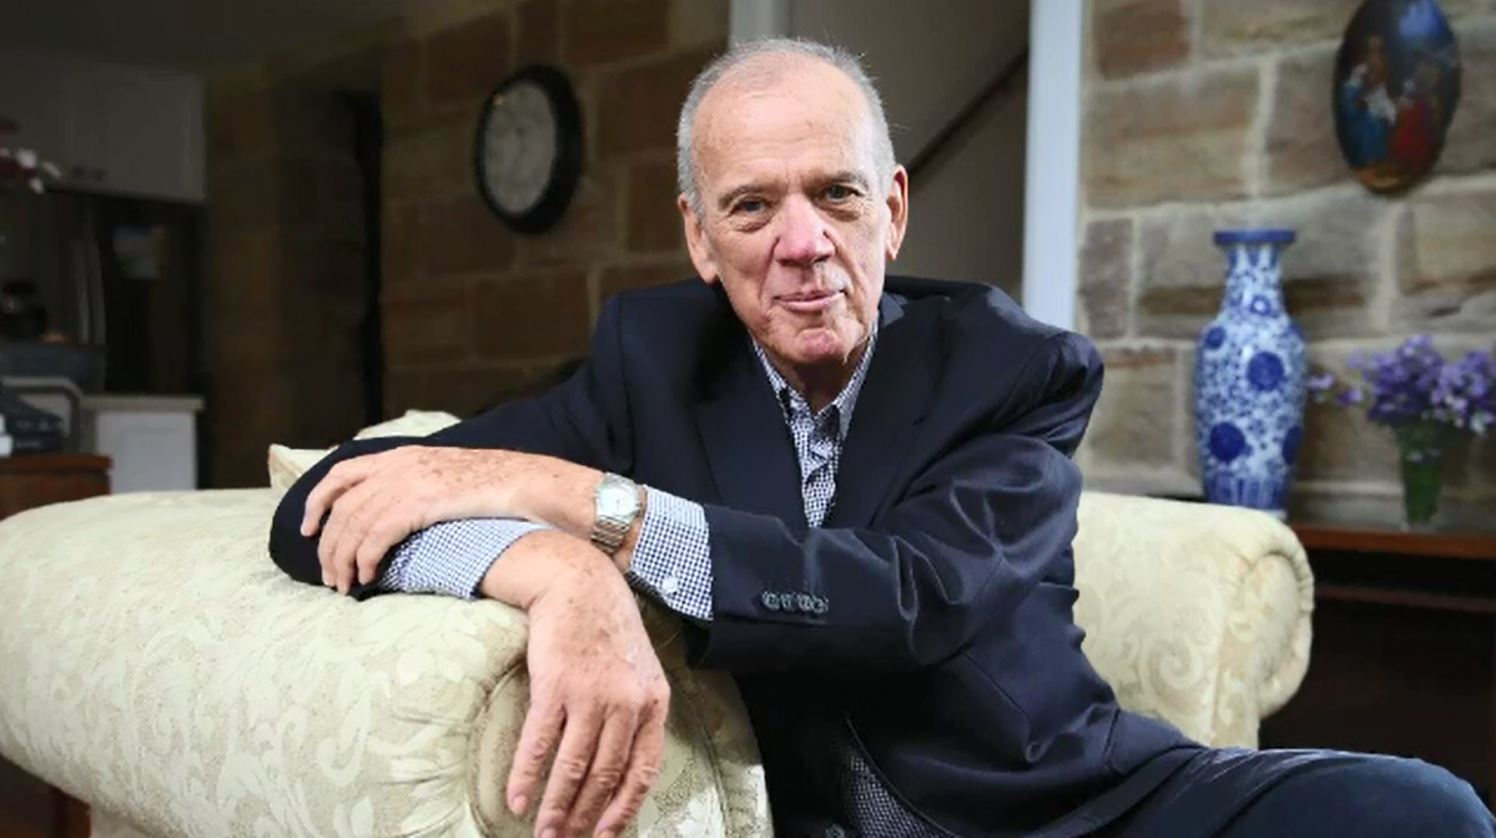 'He knew he was the best': Ray Martin remembers Mike Willesee